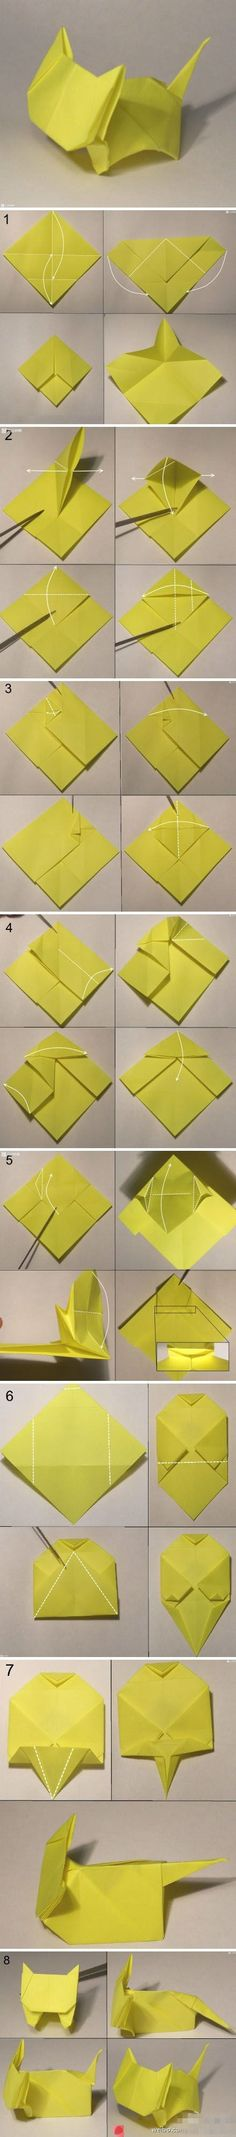 Origami Cat - to top presents? by ksrose